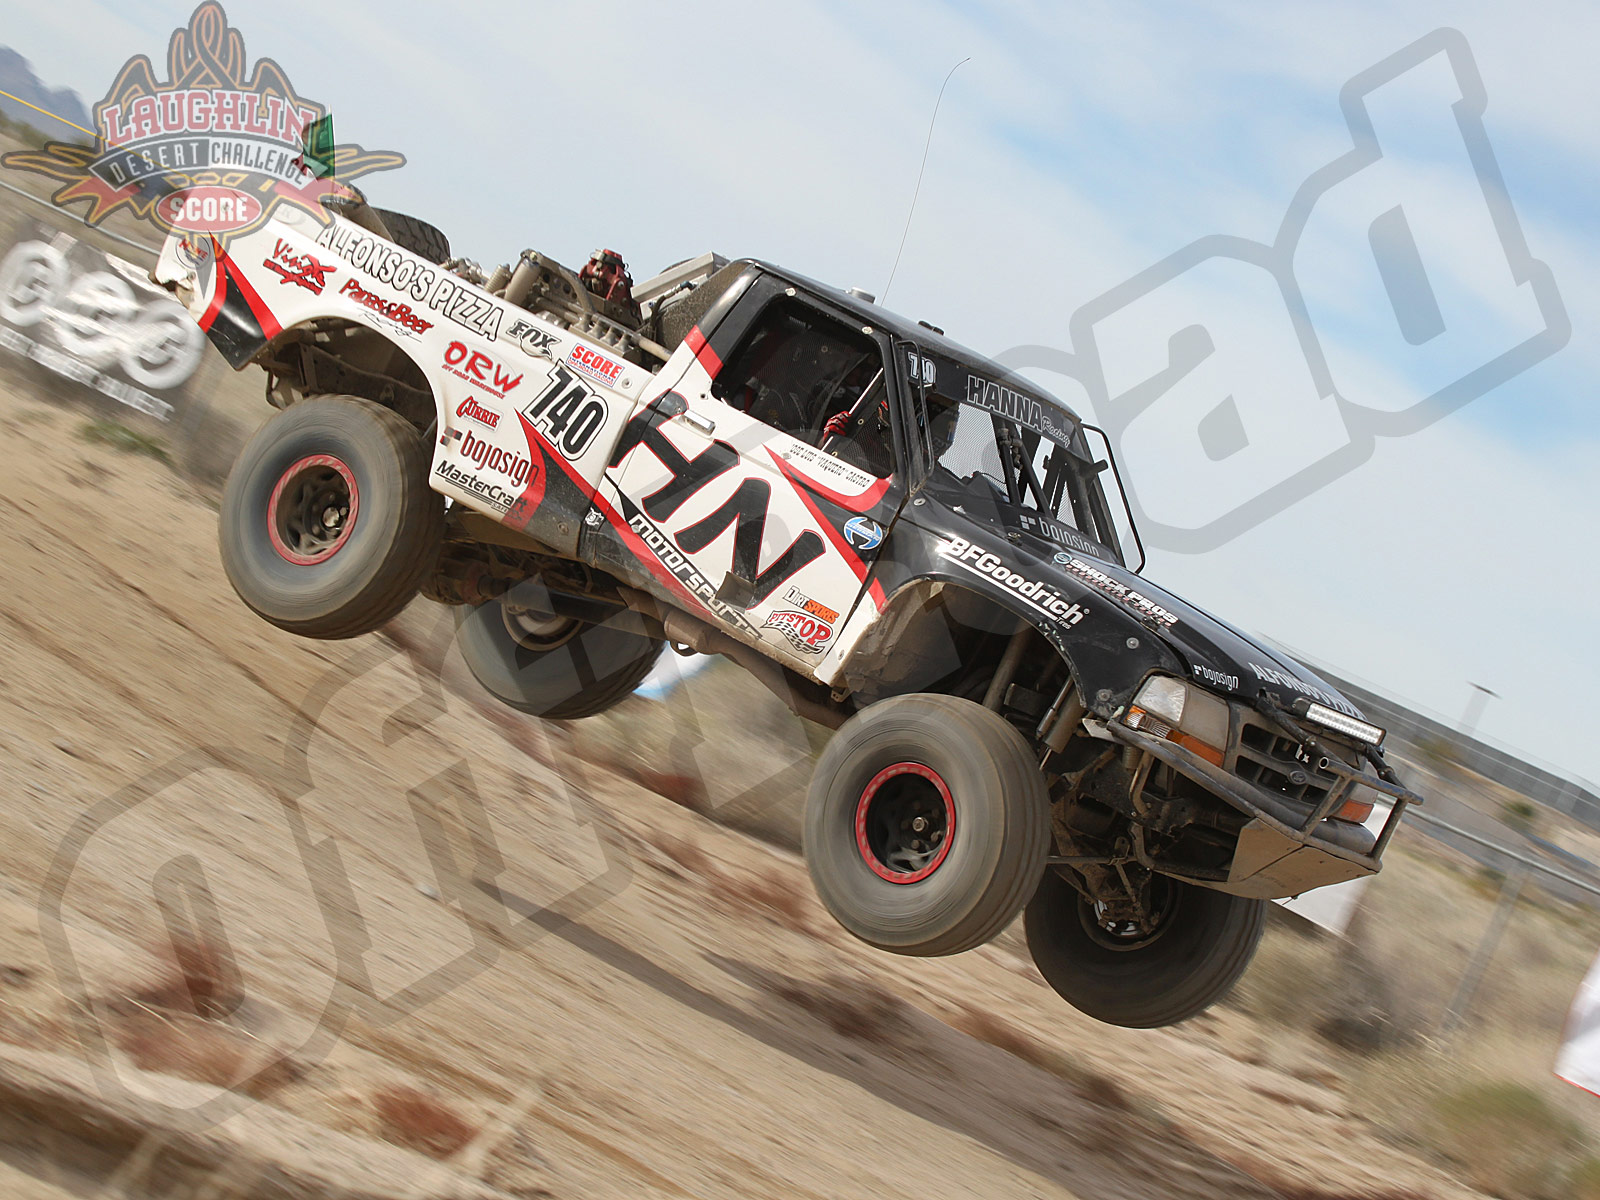 012011or 6647+2011 score laughlin desert challenge+truck classes